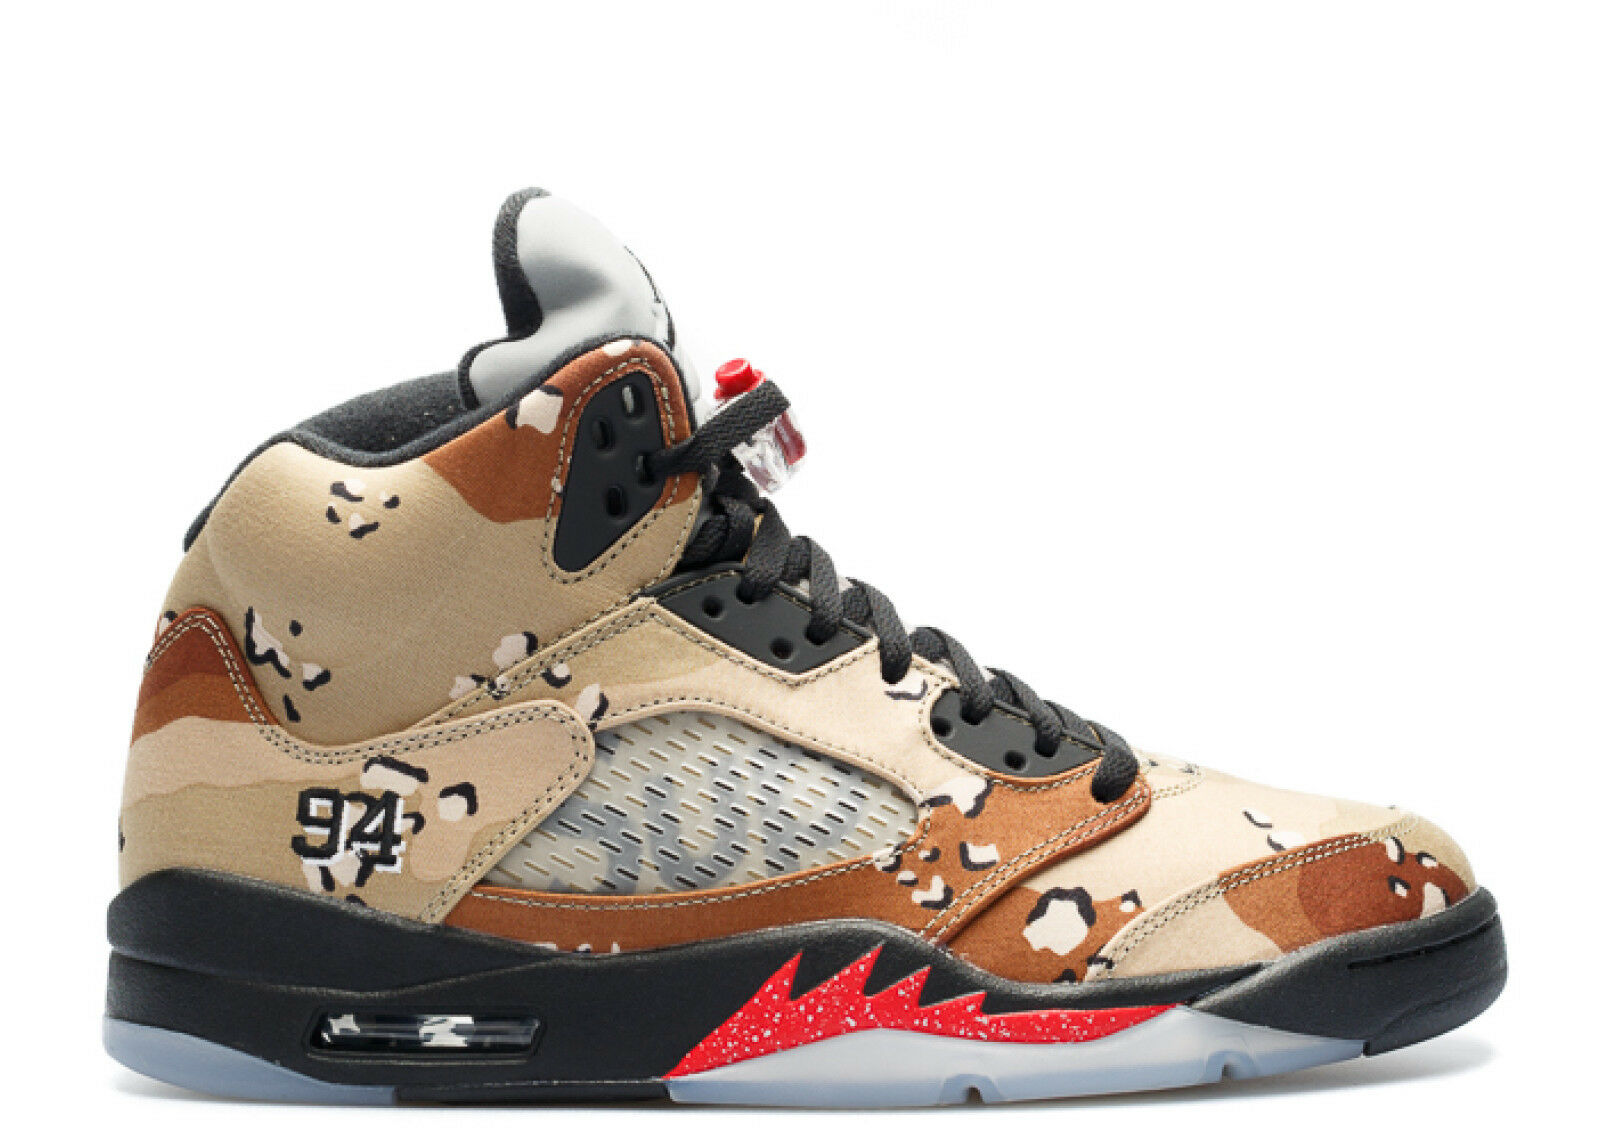 Men's Brand New Air Jordan 5 Retro Supreme Fashion Era Sneakers [824371 201]